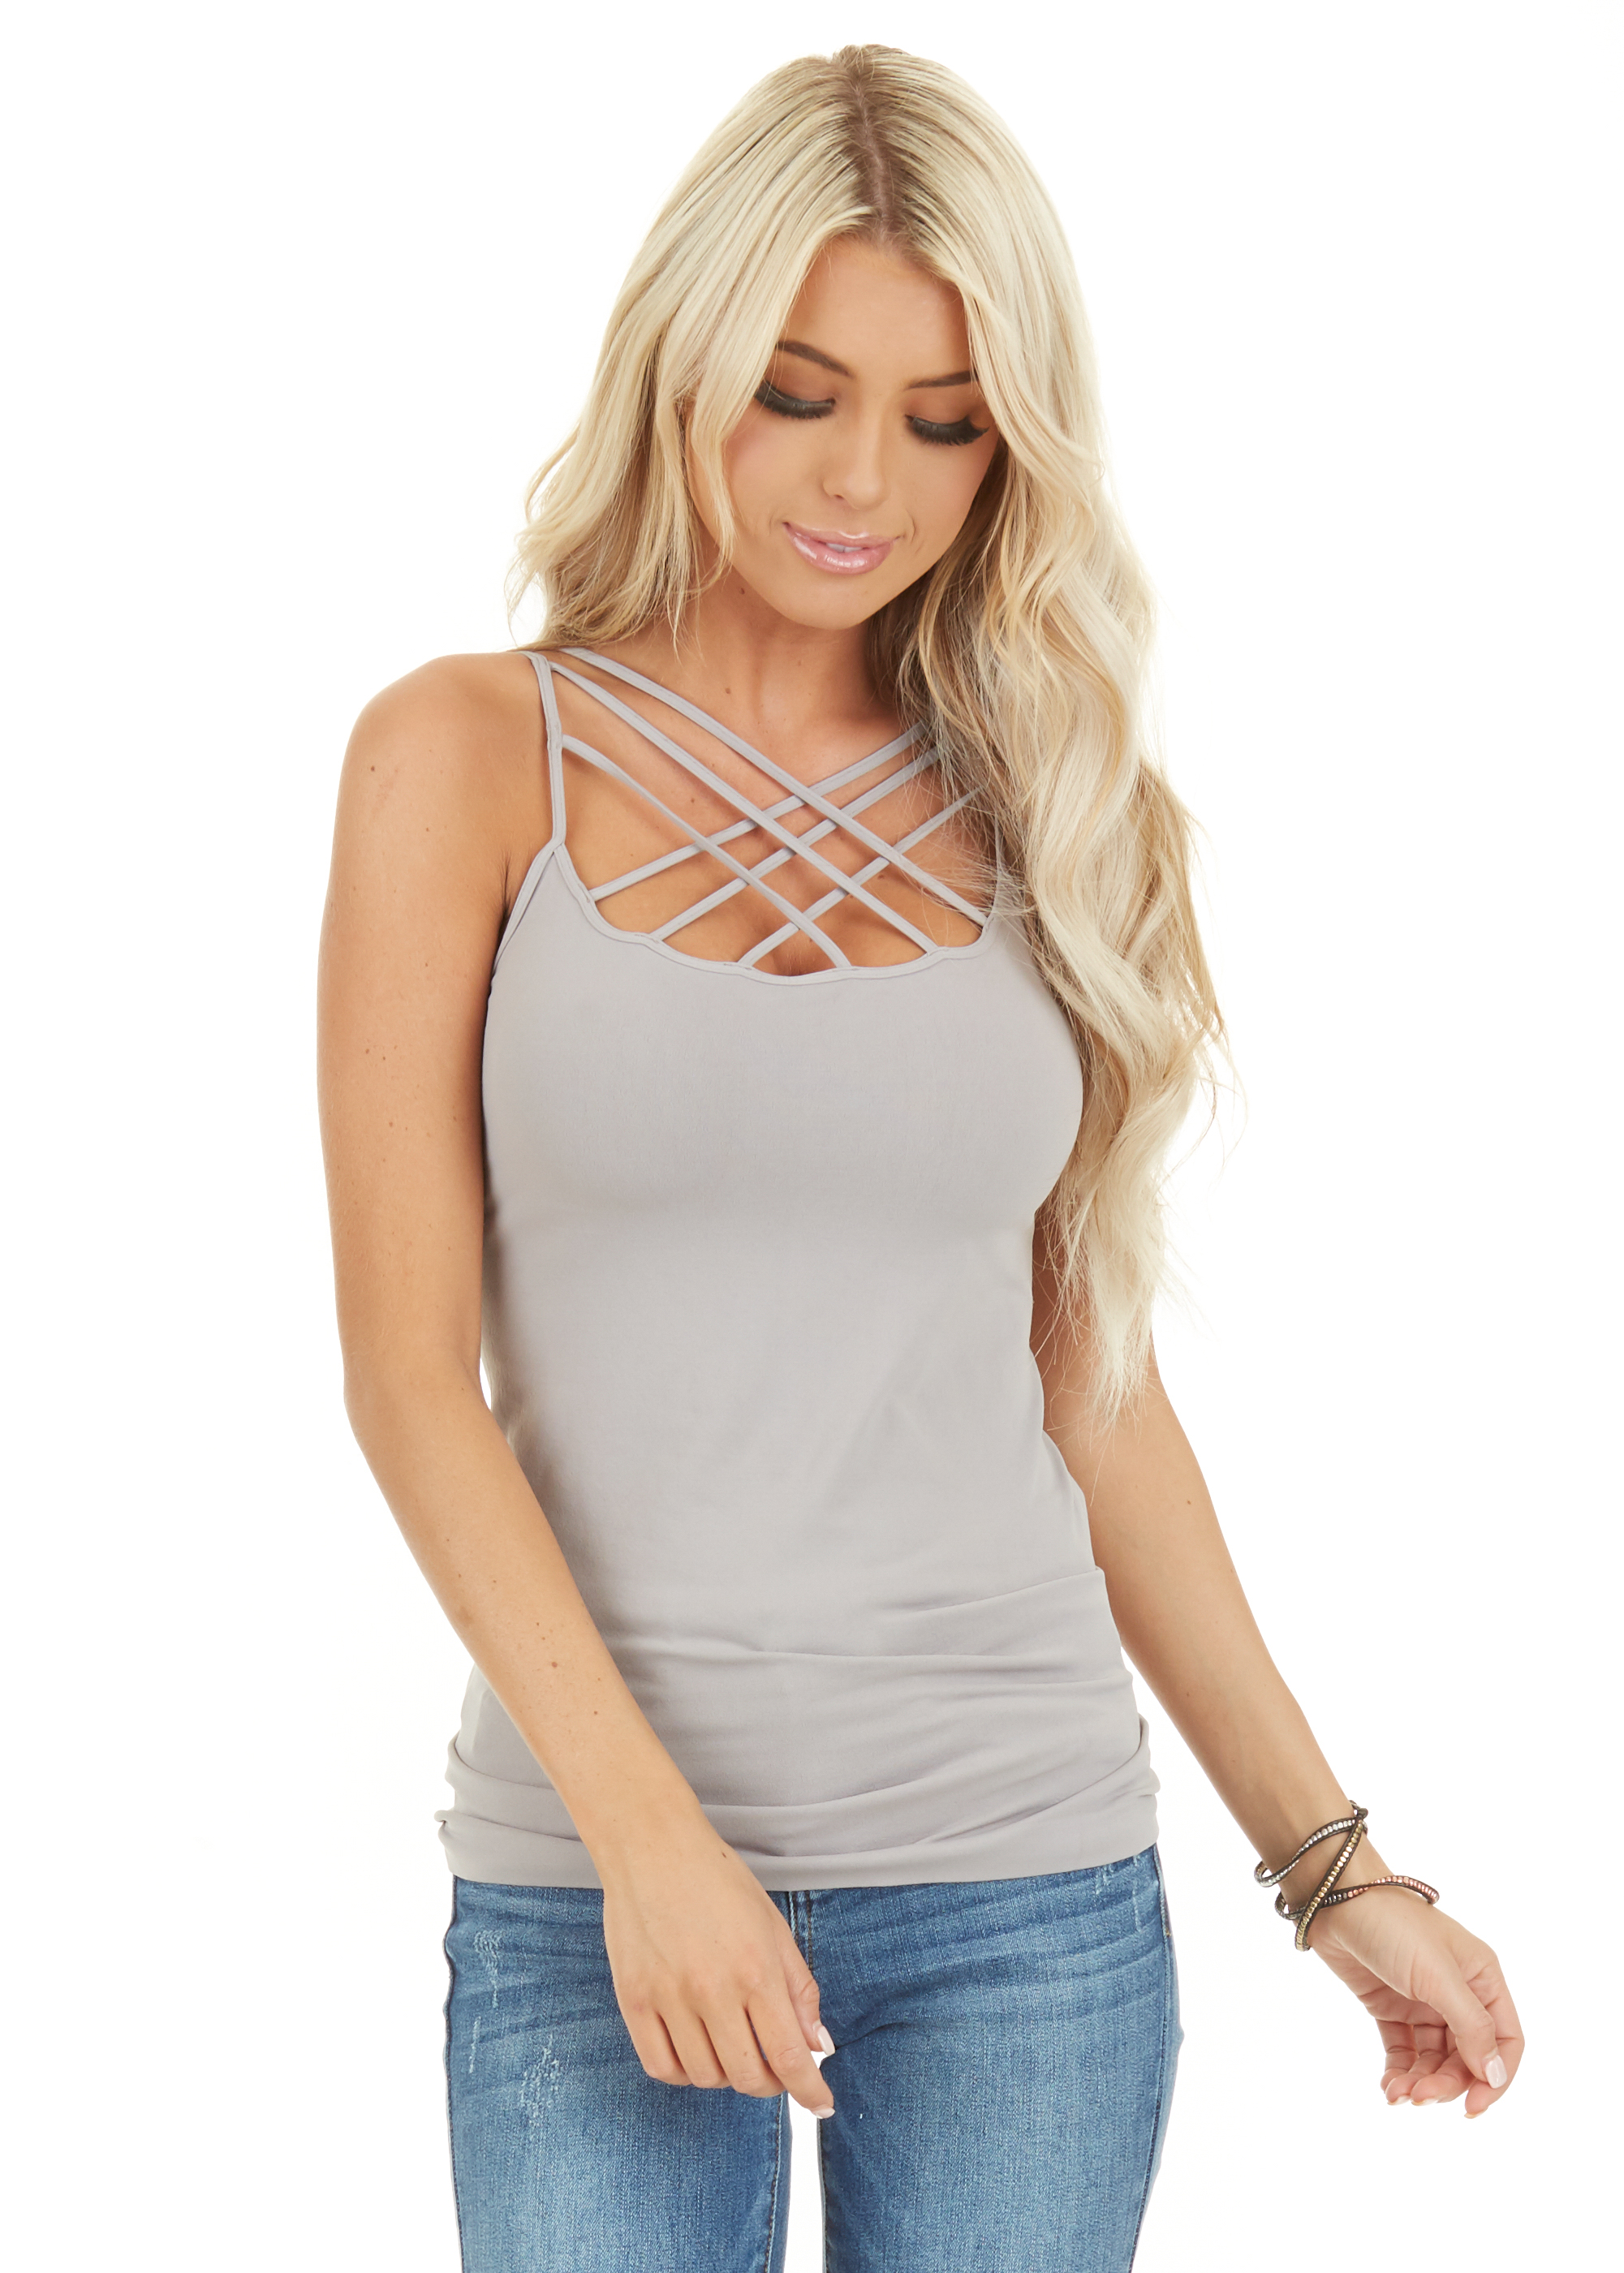 Cool Grey Criss Cross Strappy Camisole close